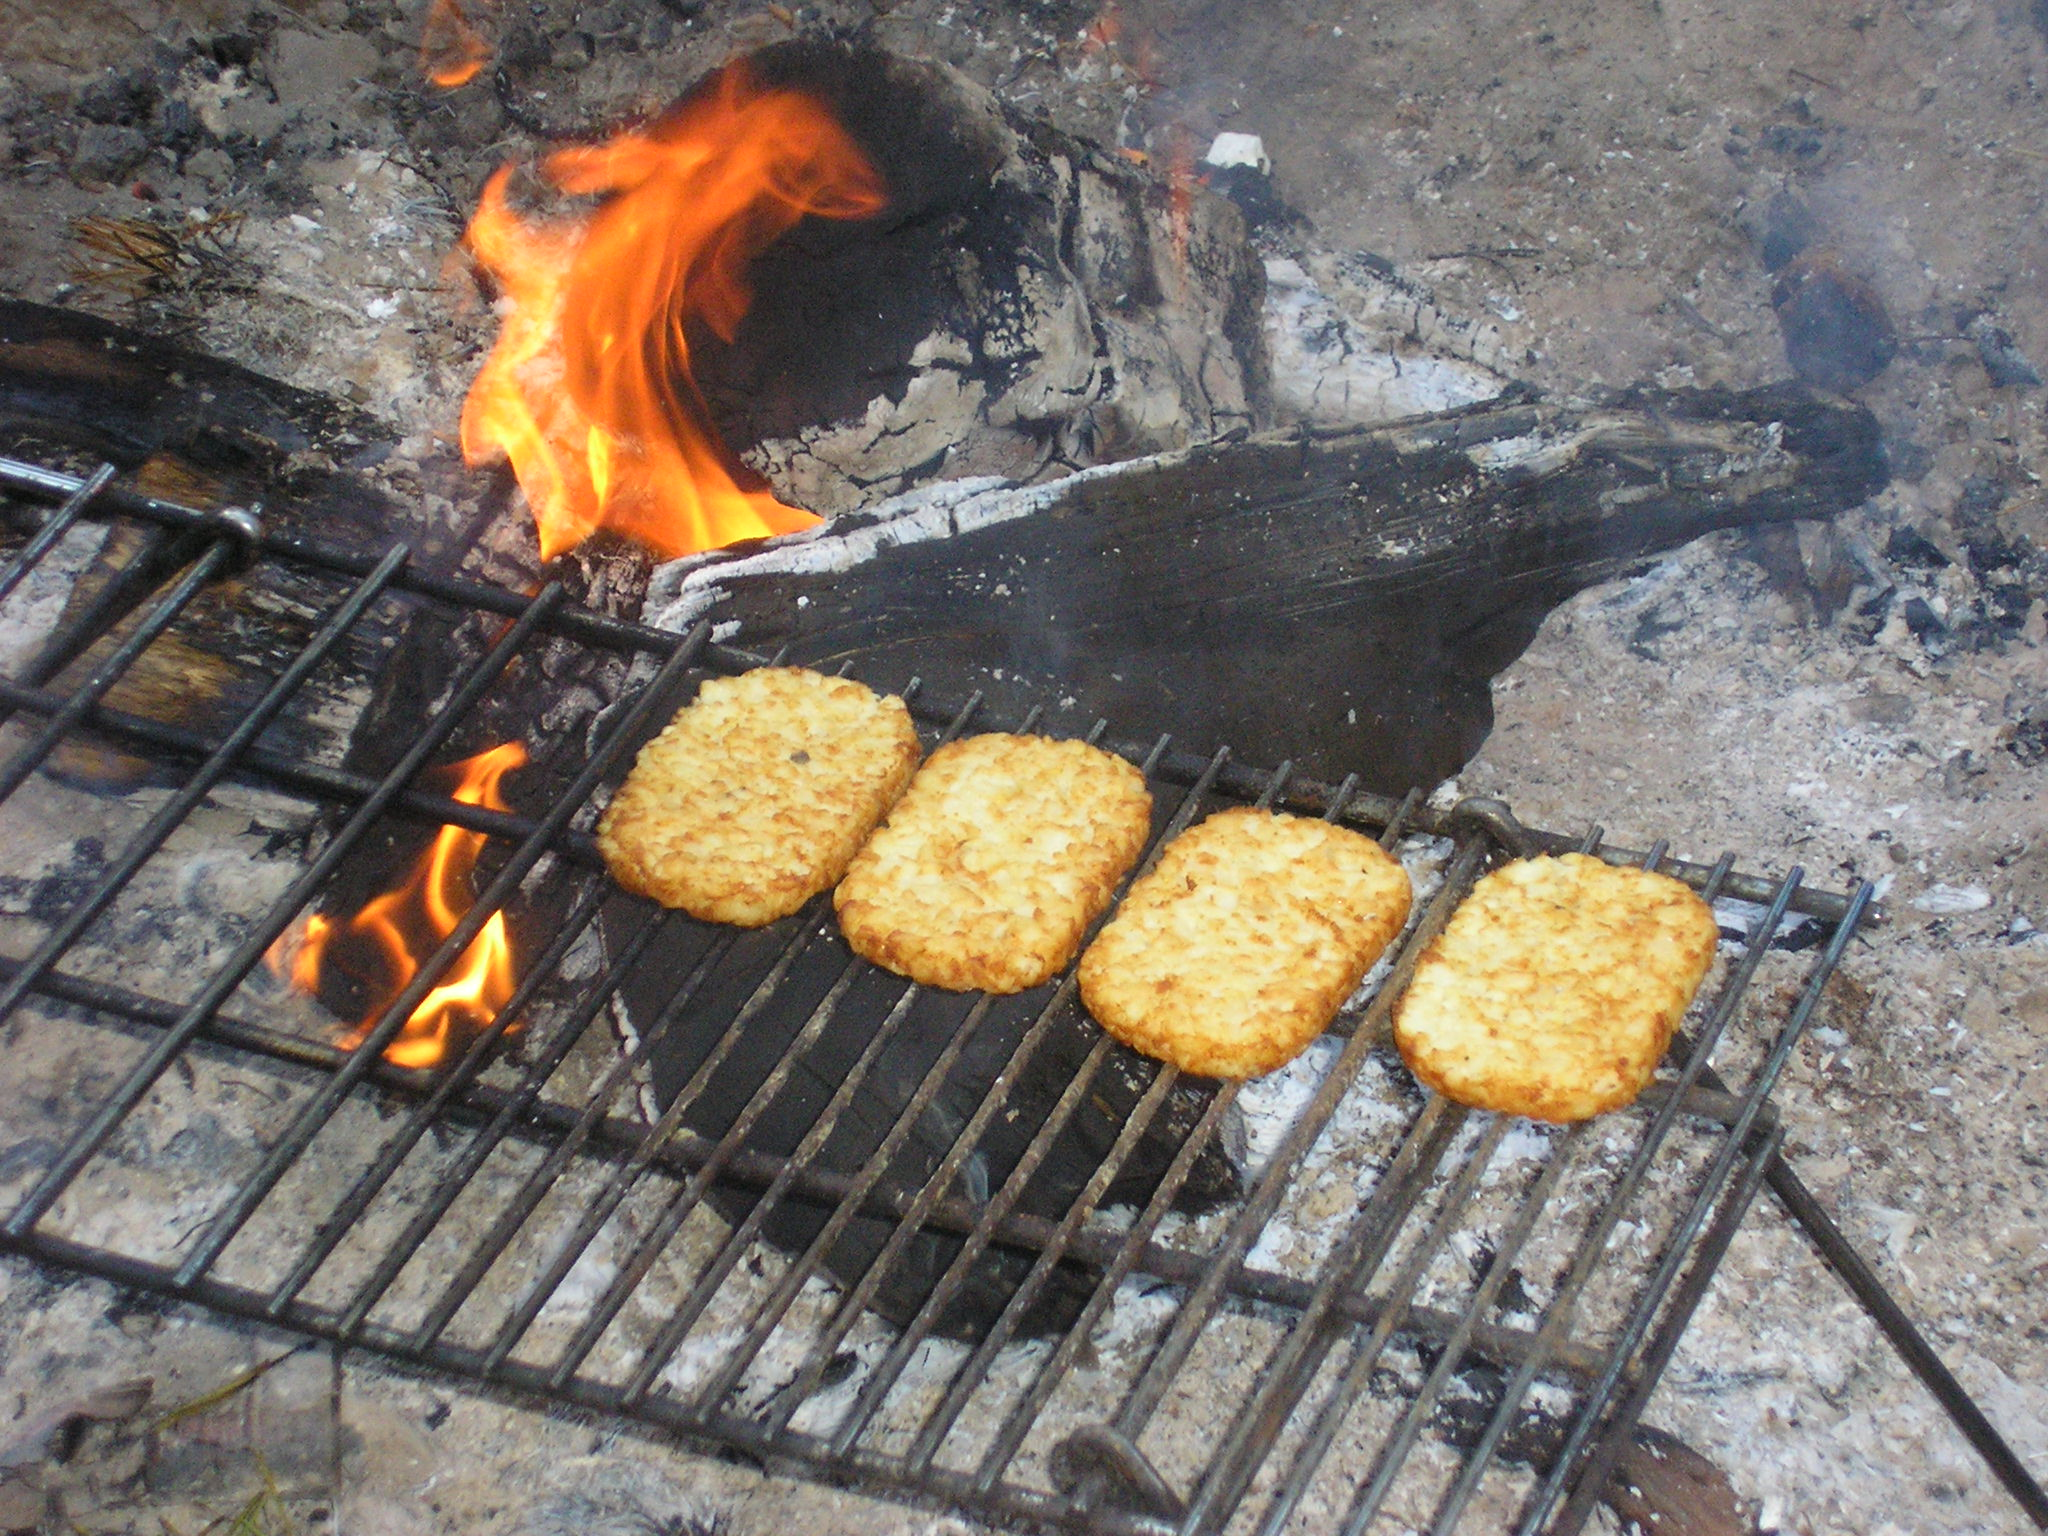 Improvised cooking of Hash Brown Potatoes